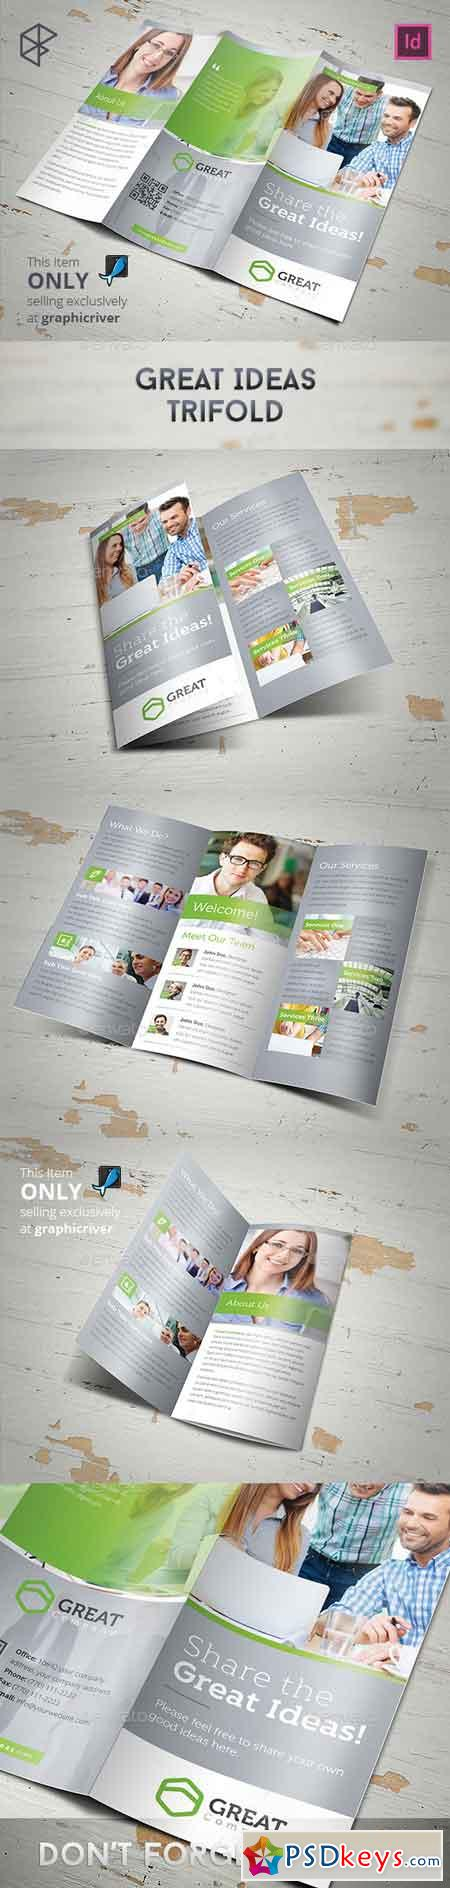 Great Ideas Trifold 11101200